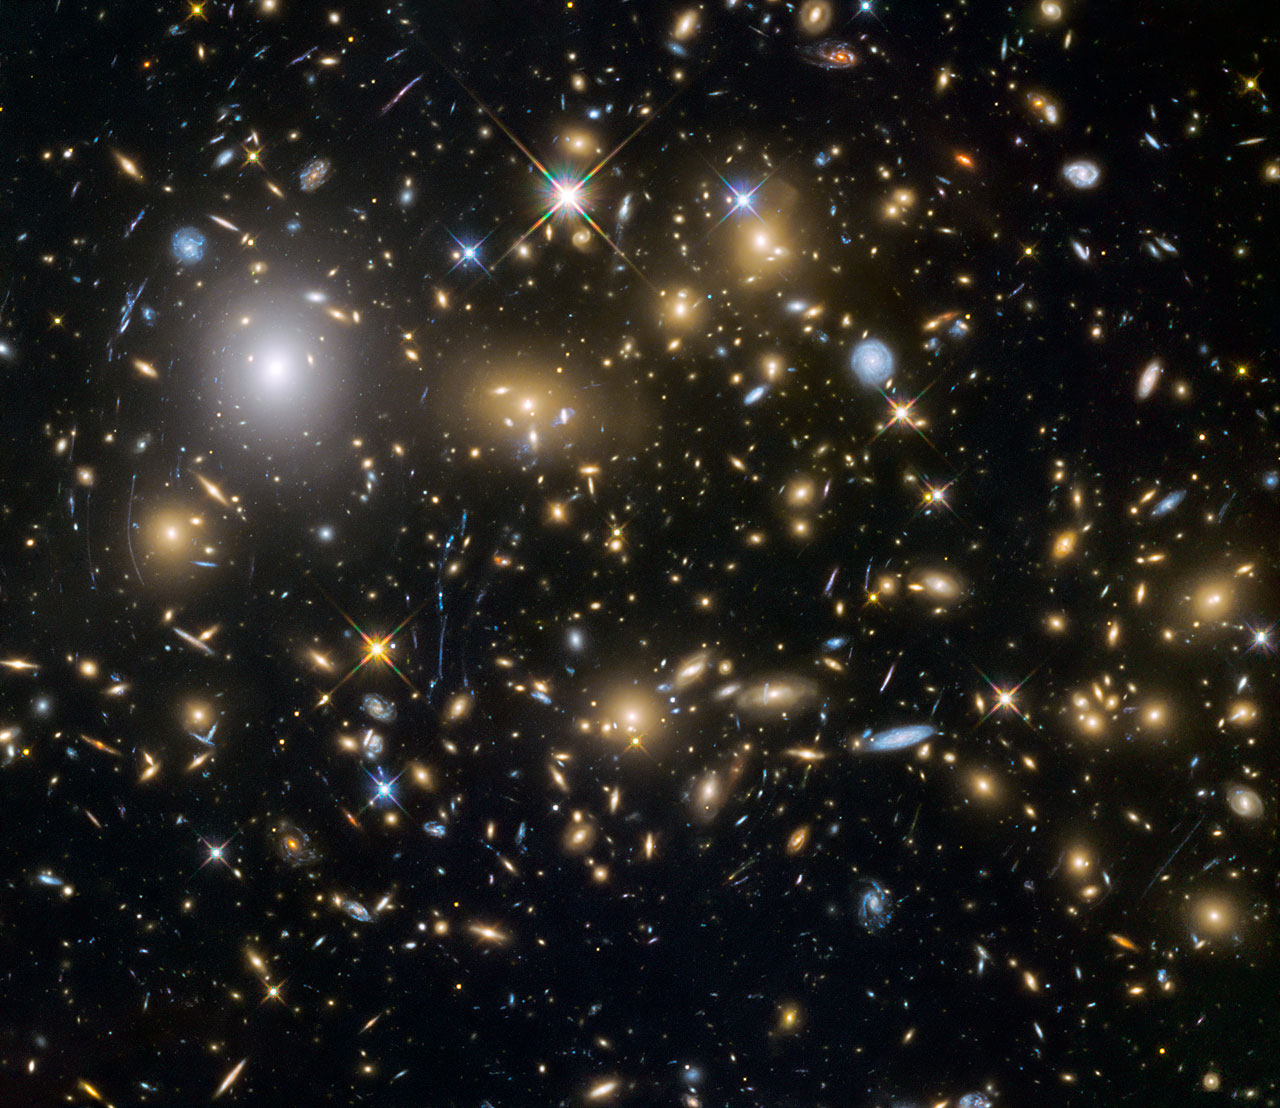 hubble telescope pictures of galaxies - HD1280×1108